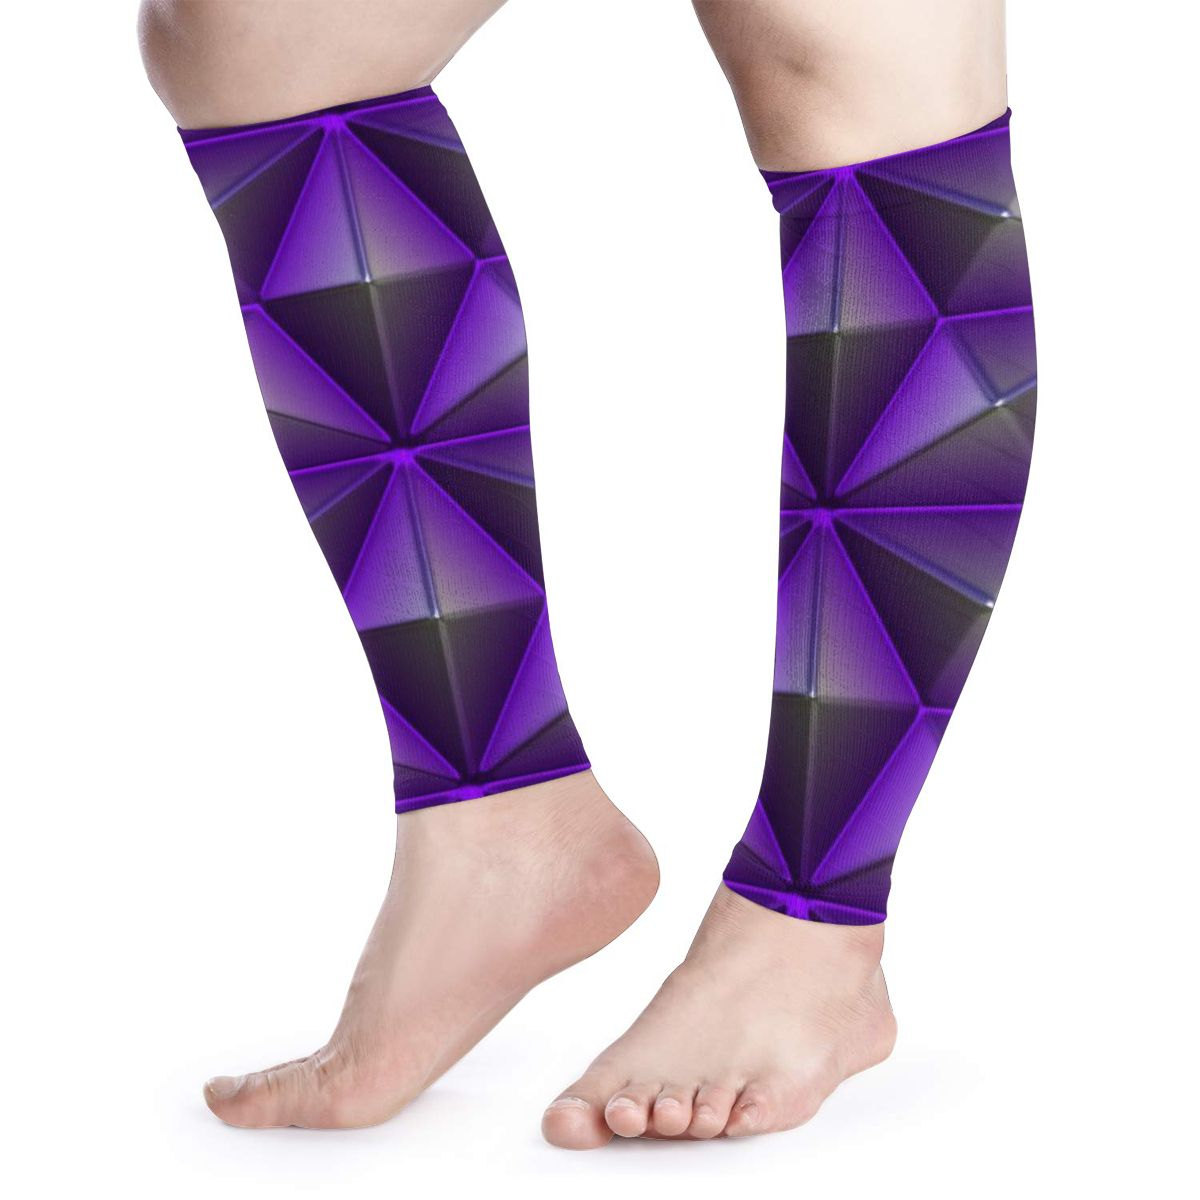 NOISYDESIGNS A Pair Calf Protecctor Sleeves Purple Geometric Print Elastic Shin Guard Protector Leg Warmers Sport Equipment